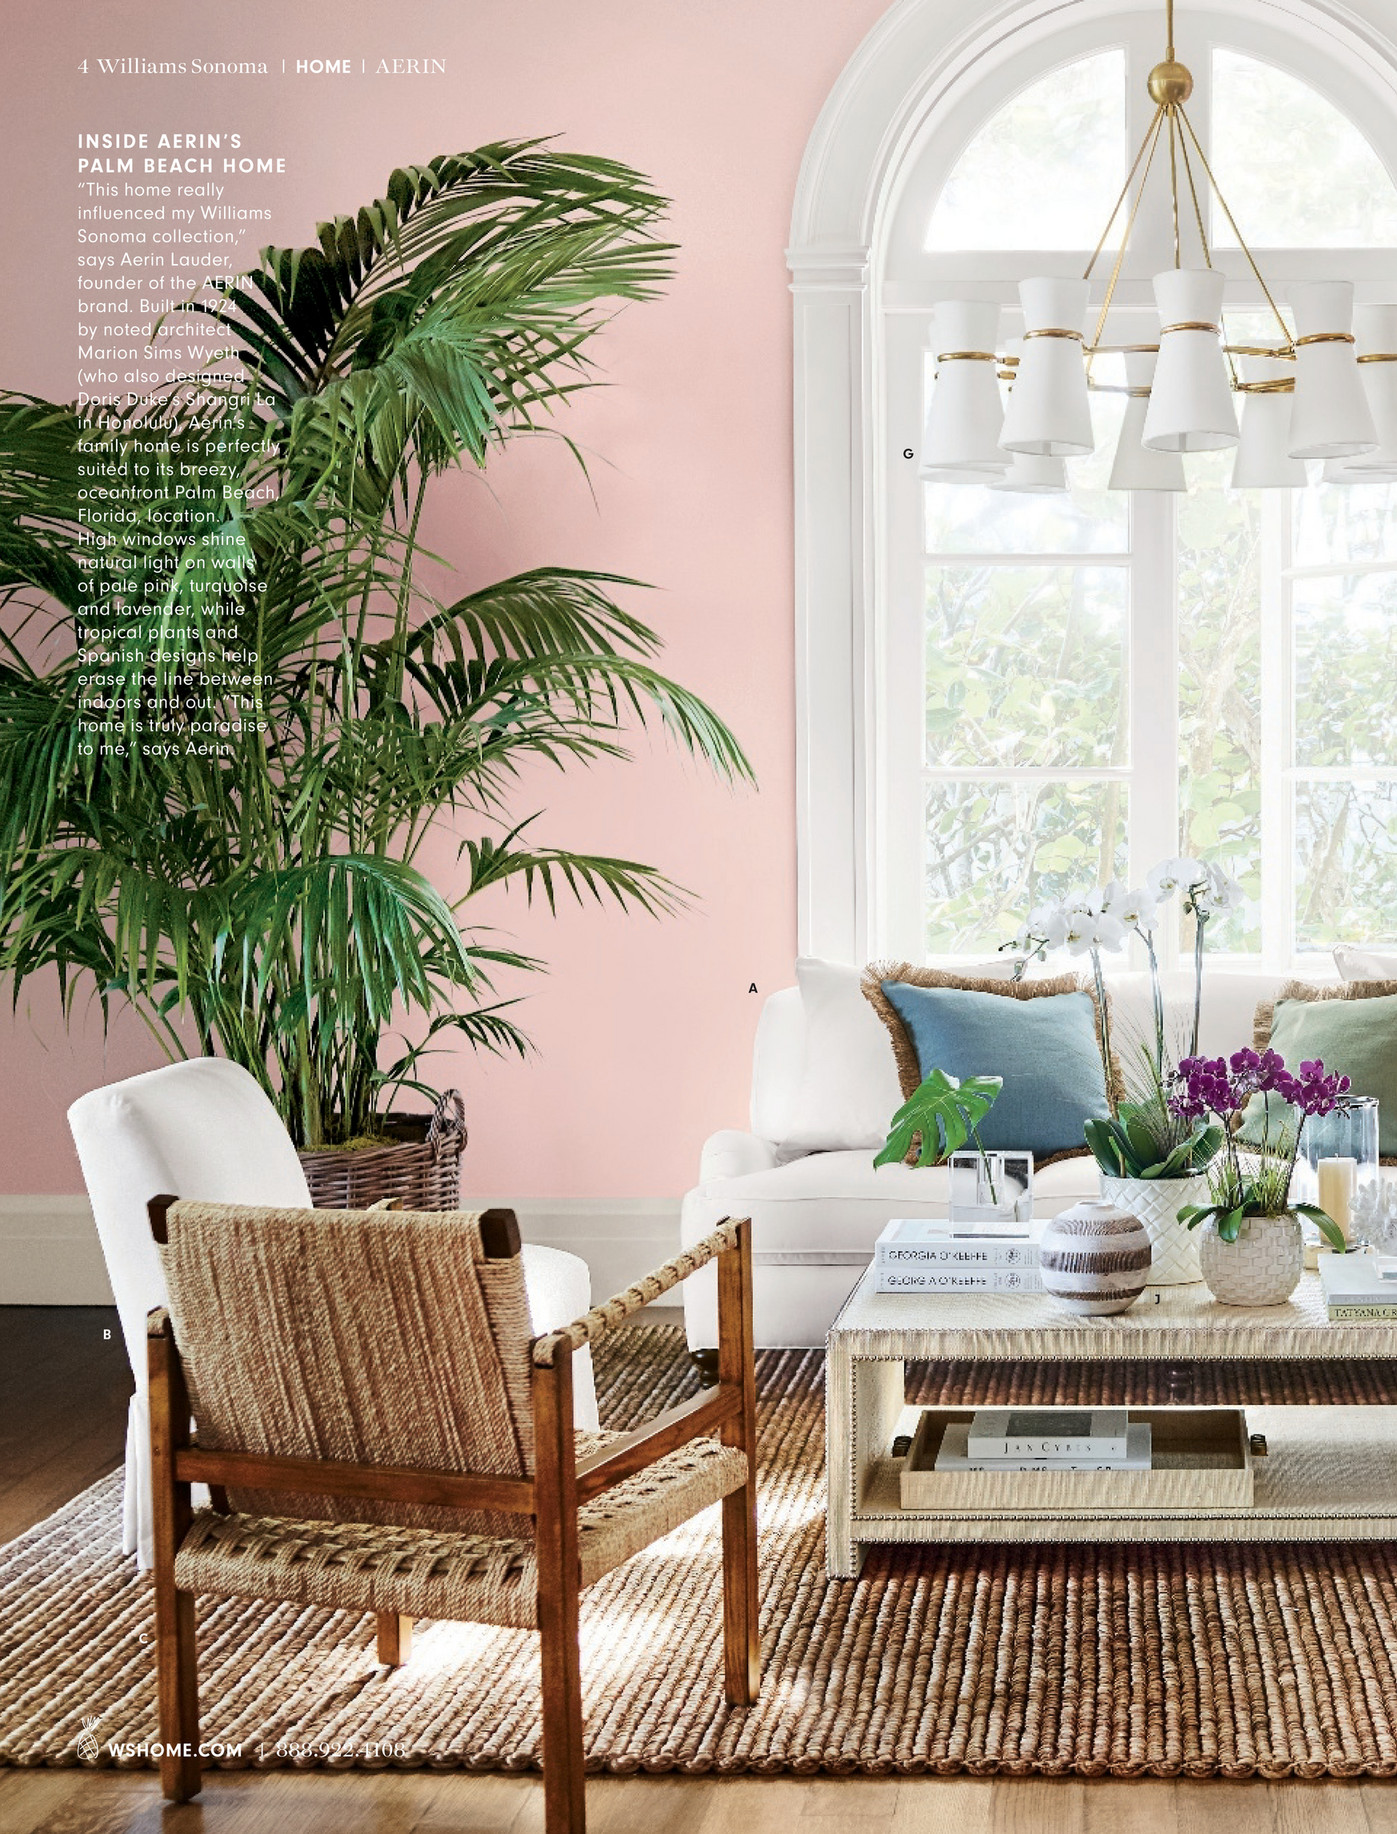 william sonoma chair covers gym with twister seat williams home the aerin collection 2017 page 4 5